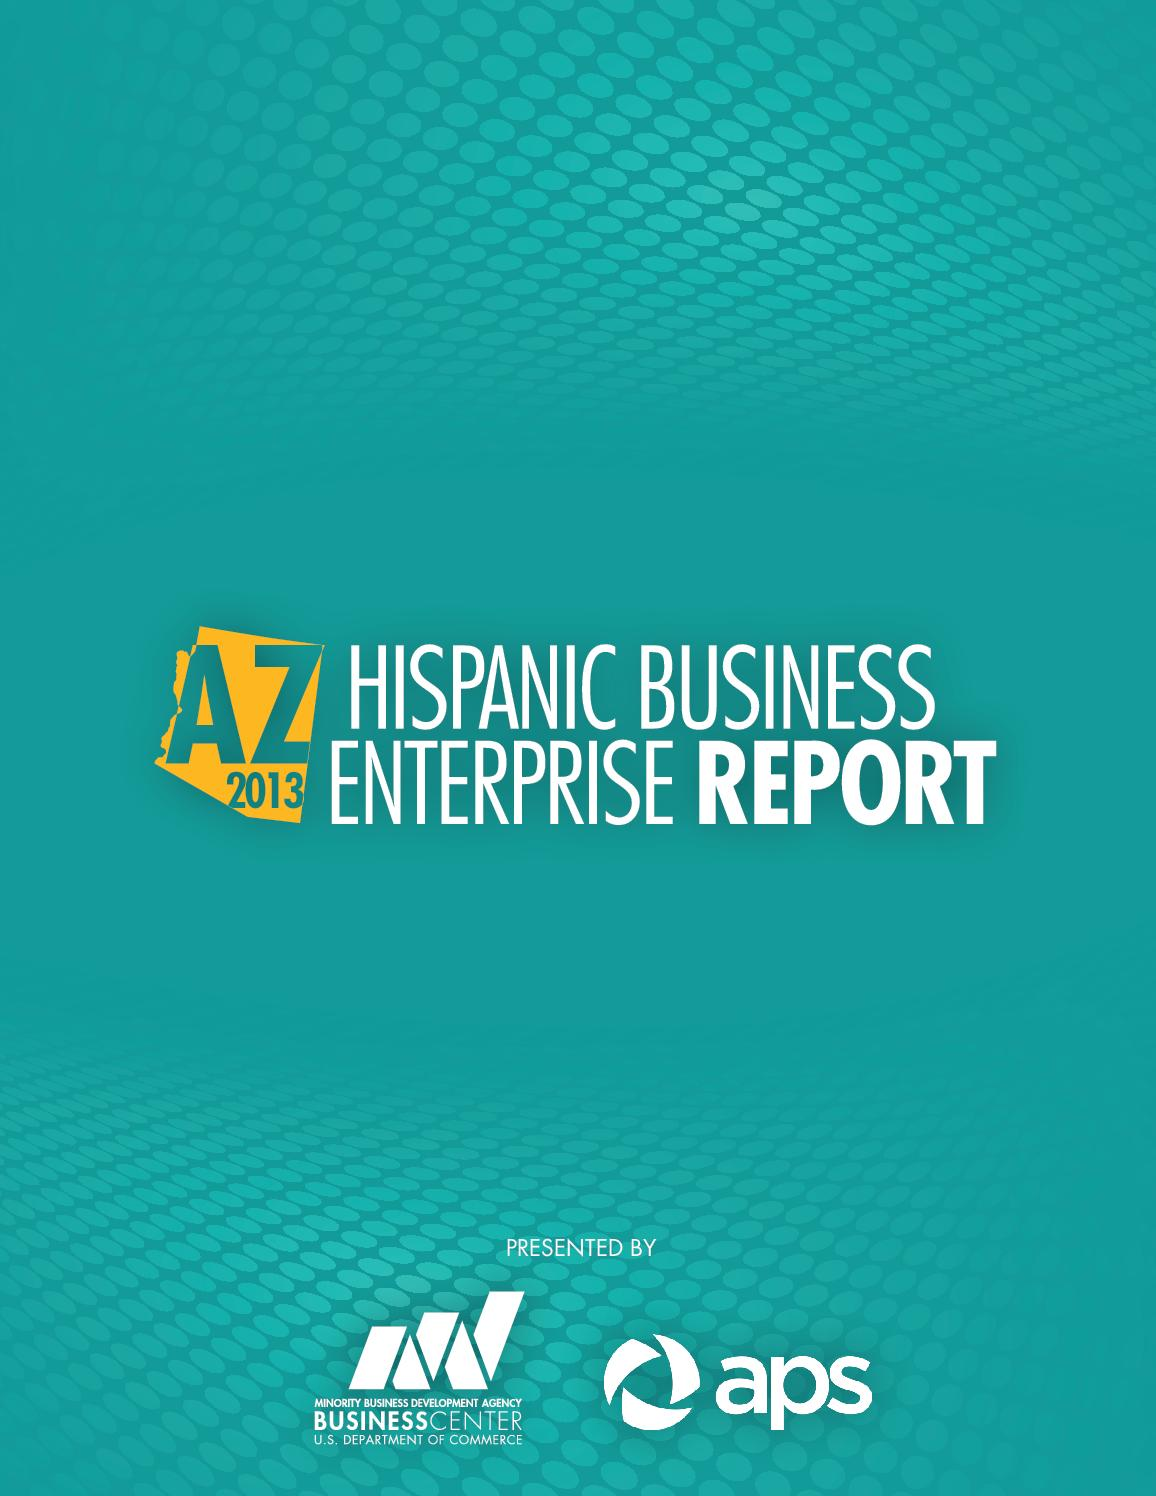 east enterprise hispanic singles East enterprise in demographics data with population from census shown with charts, graphs and text includes hispanic, race, citizenship, births and singles.